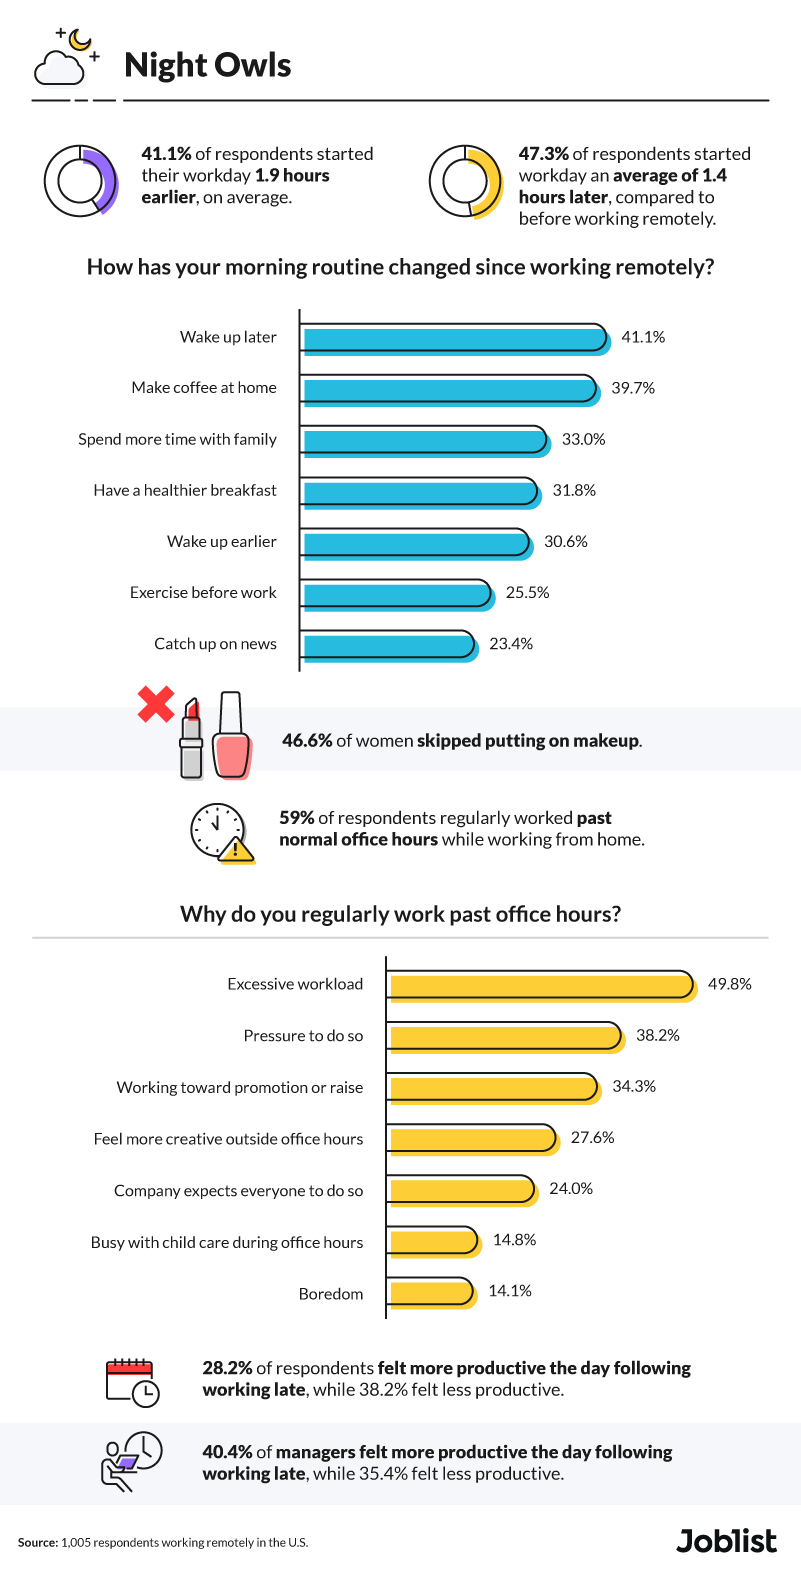 hourly-routine-changes-remote-work